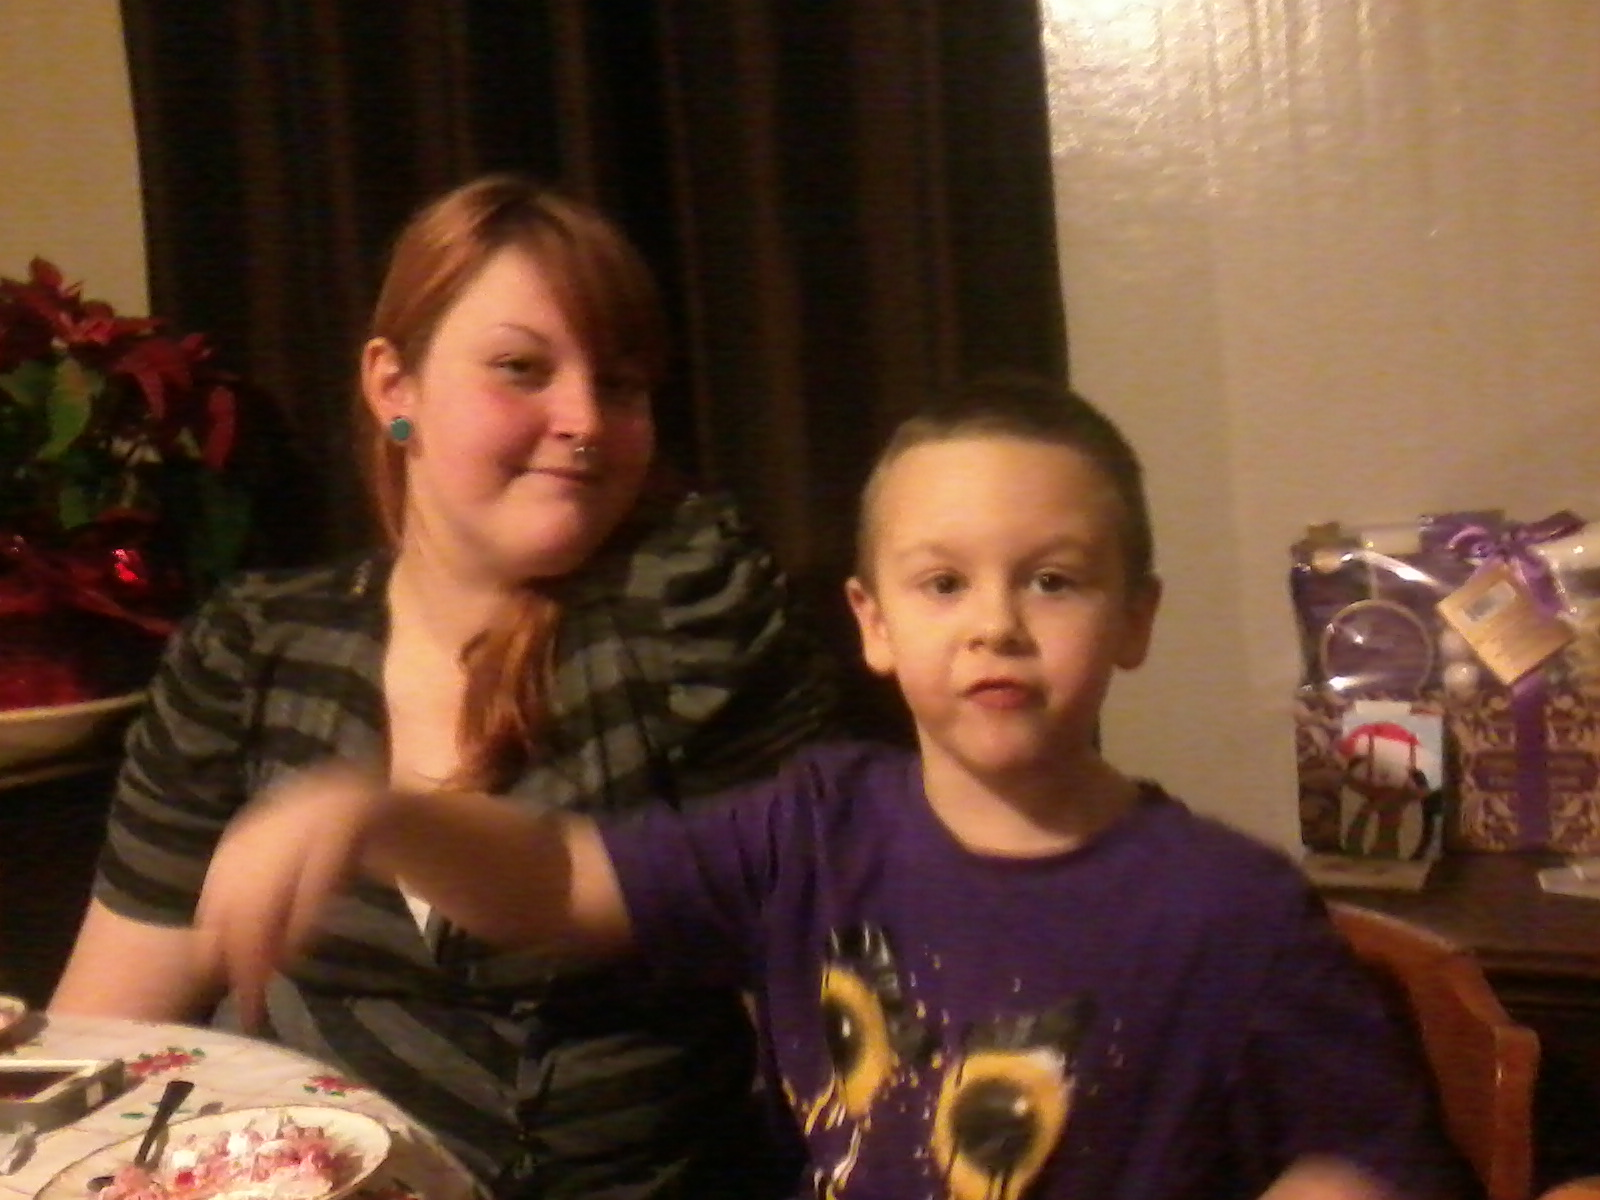 Ali with his big sis! (My niece, Taryn, and my nephew, Ali.)